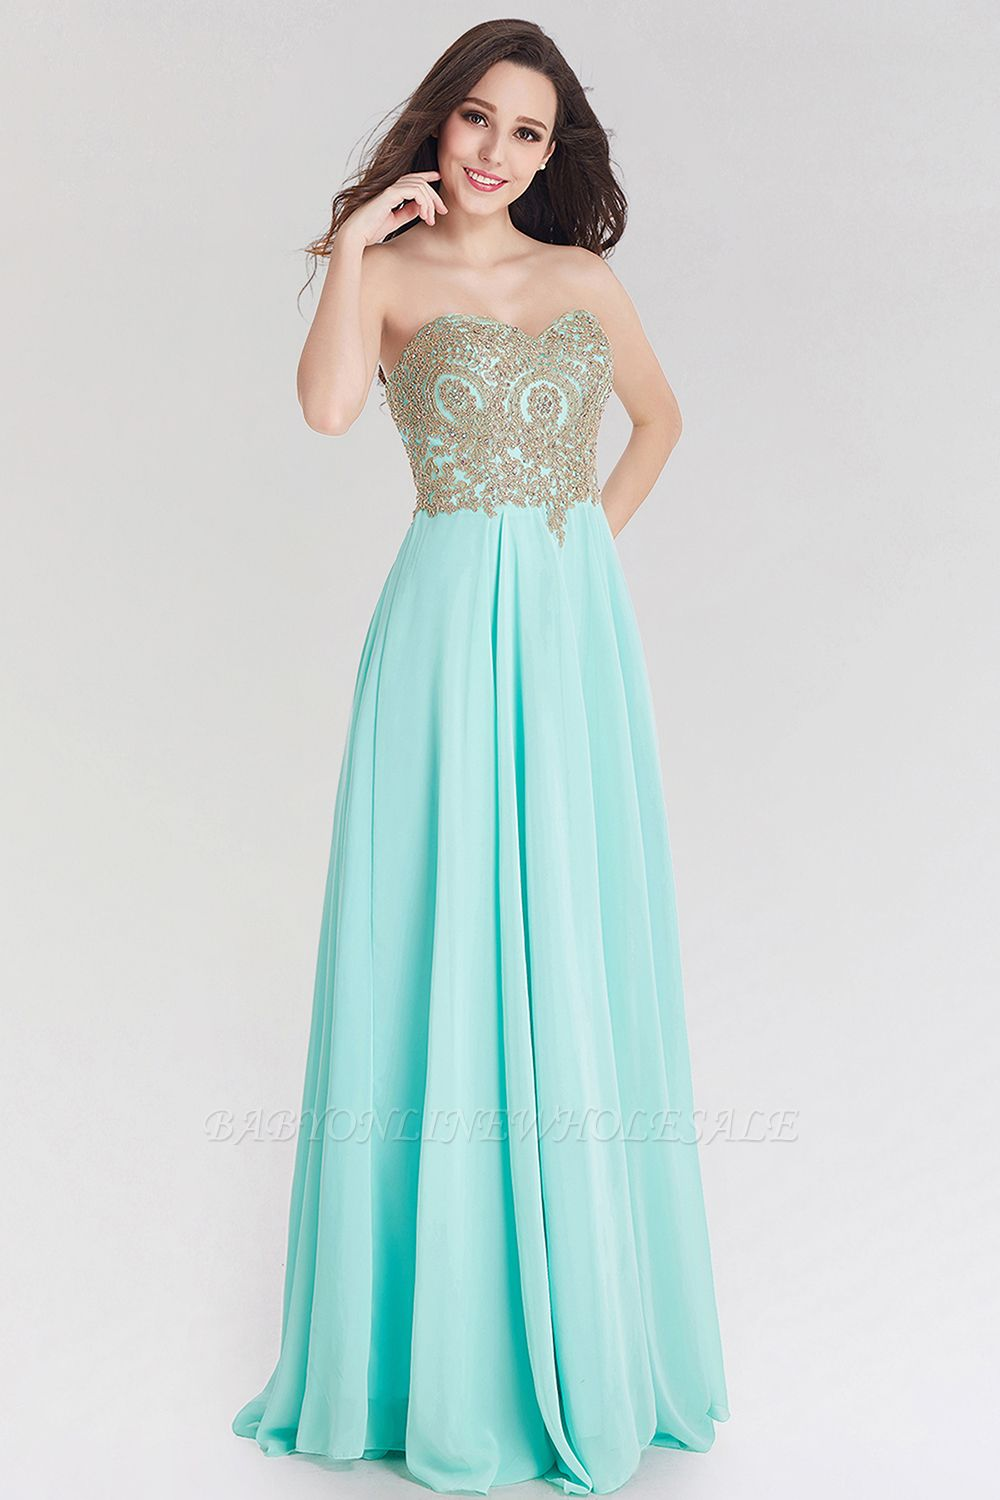 A-line Chiffon Strapless Sweetheart Sleeveless Floor-Length Bridesmaid Dress with Beadings